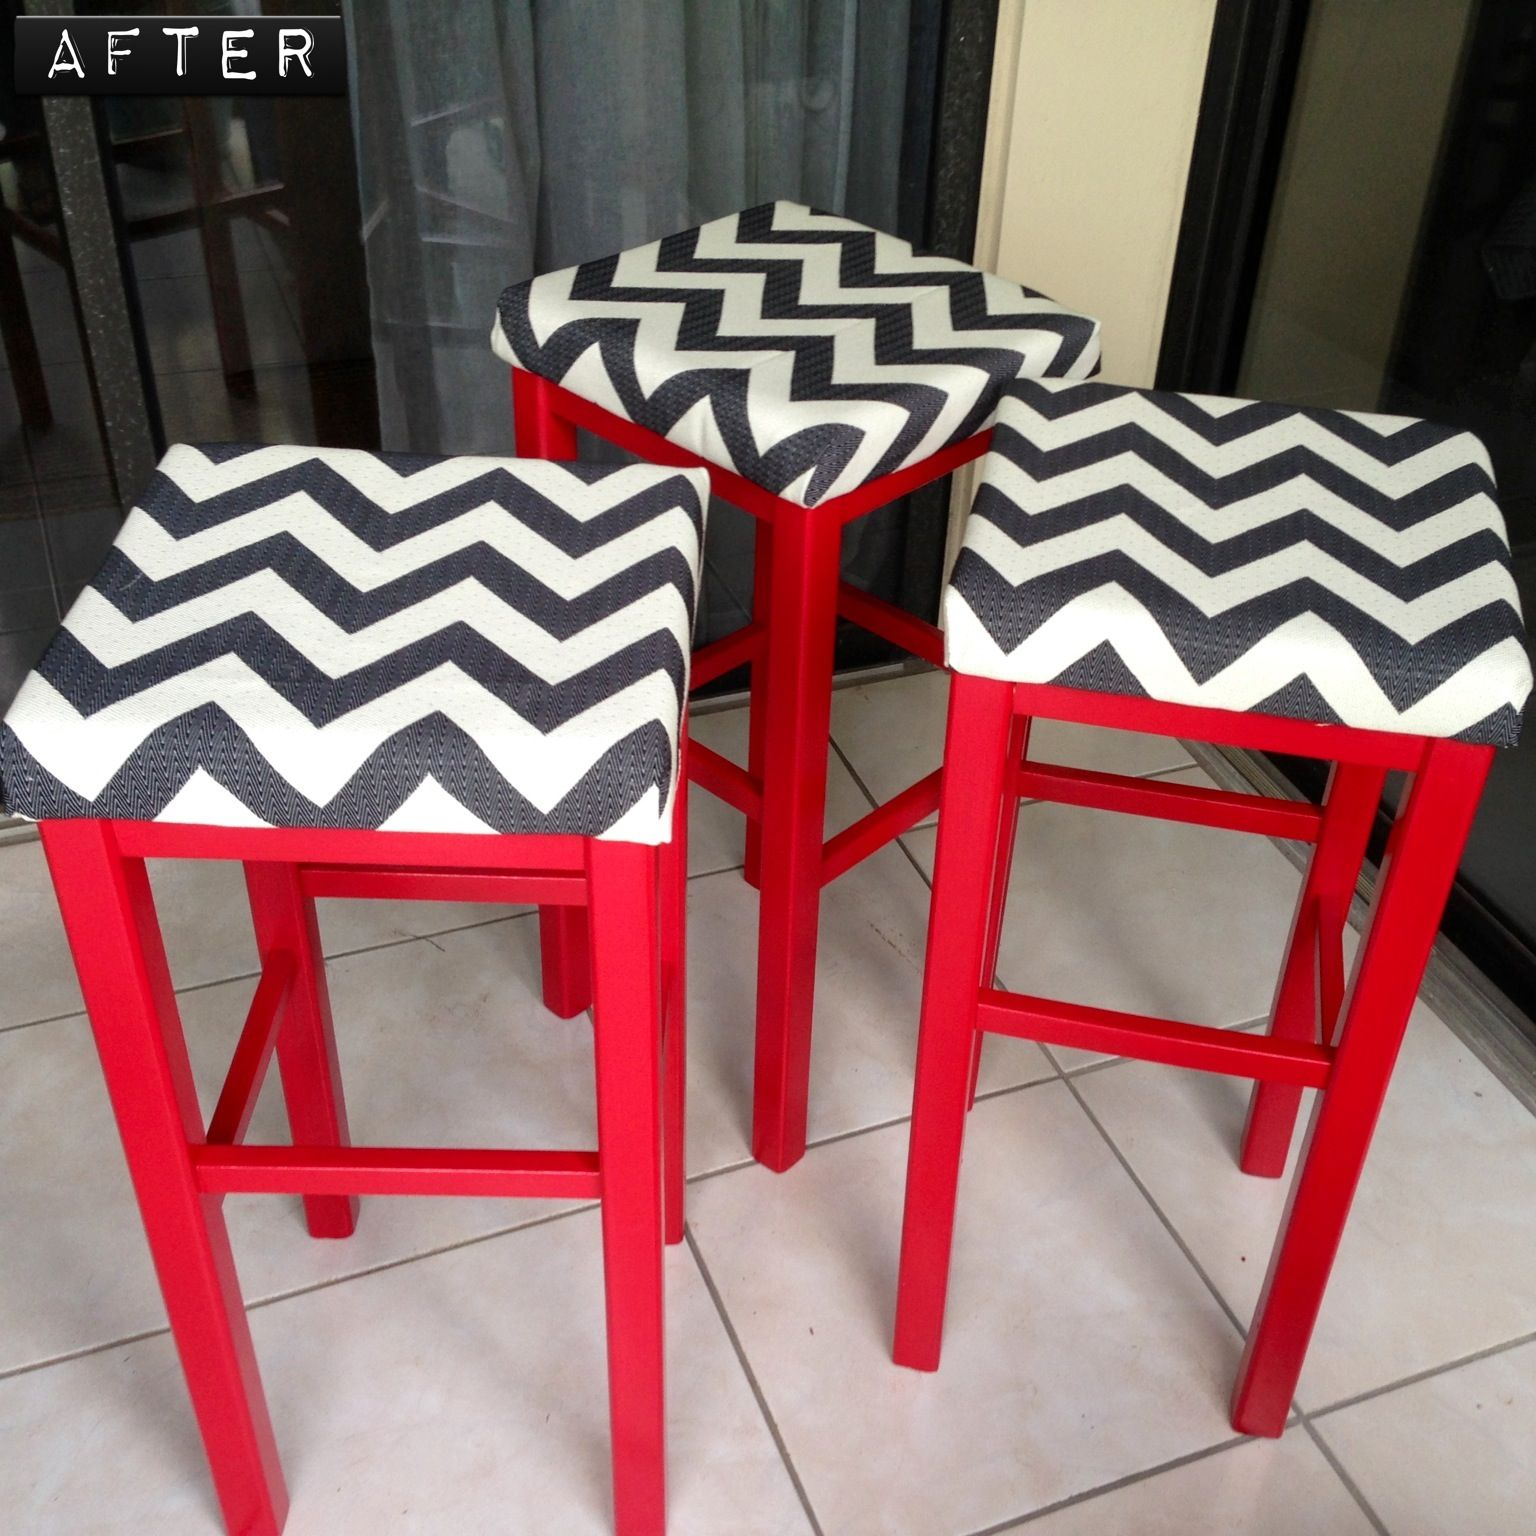 This Month S Before Amp After Features Some Stools I Made For A Friend It Takes About A 5 Hours To Wo Red Kitchen Decor Black And Red Kitchen Red Bar Stools